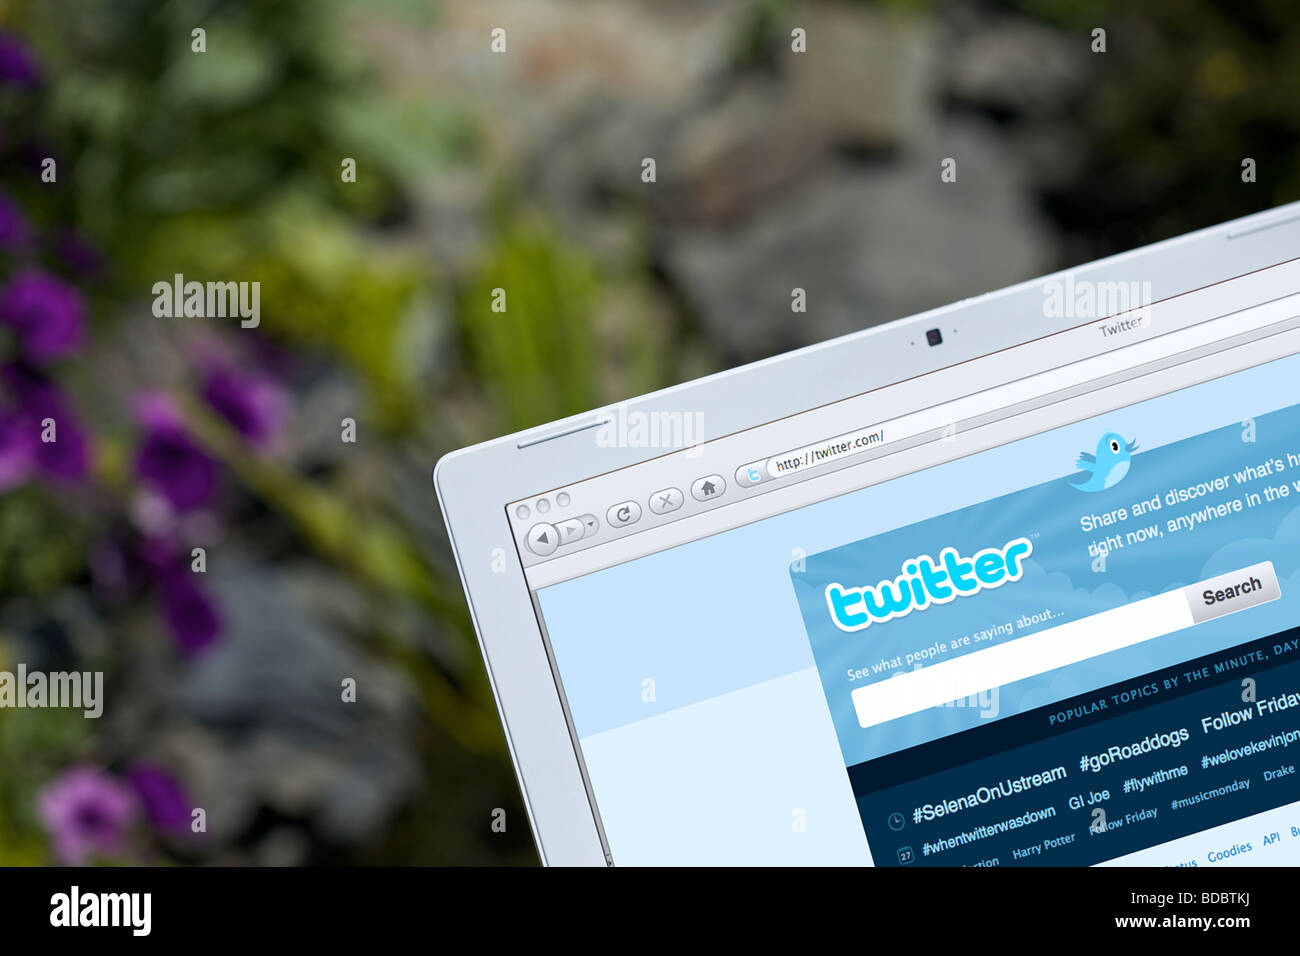 Laptop showing social networking Twitter splash screen page Stock Photo